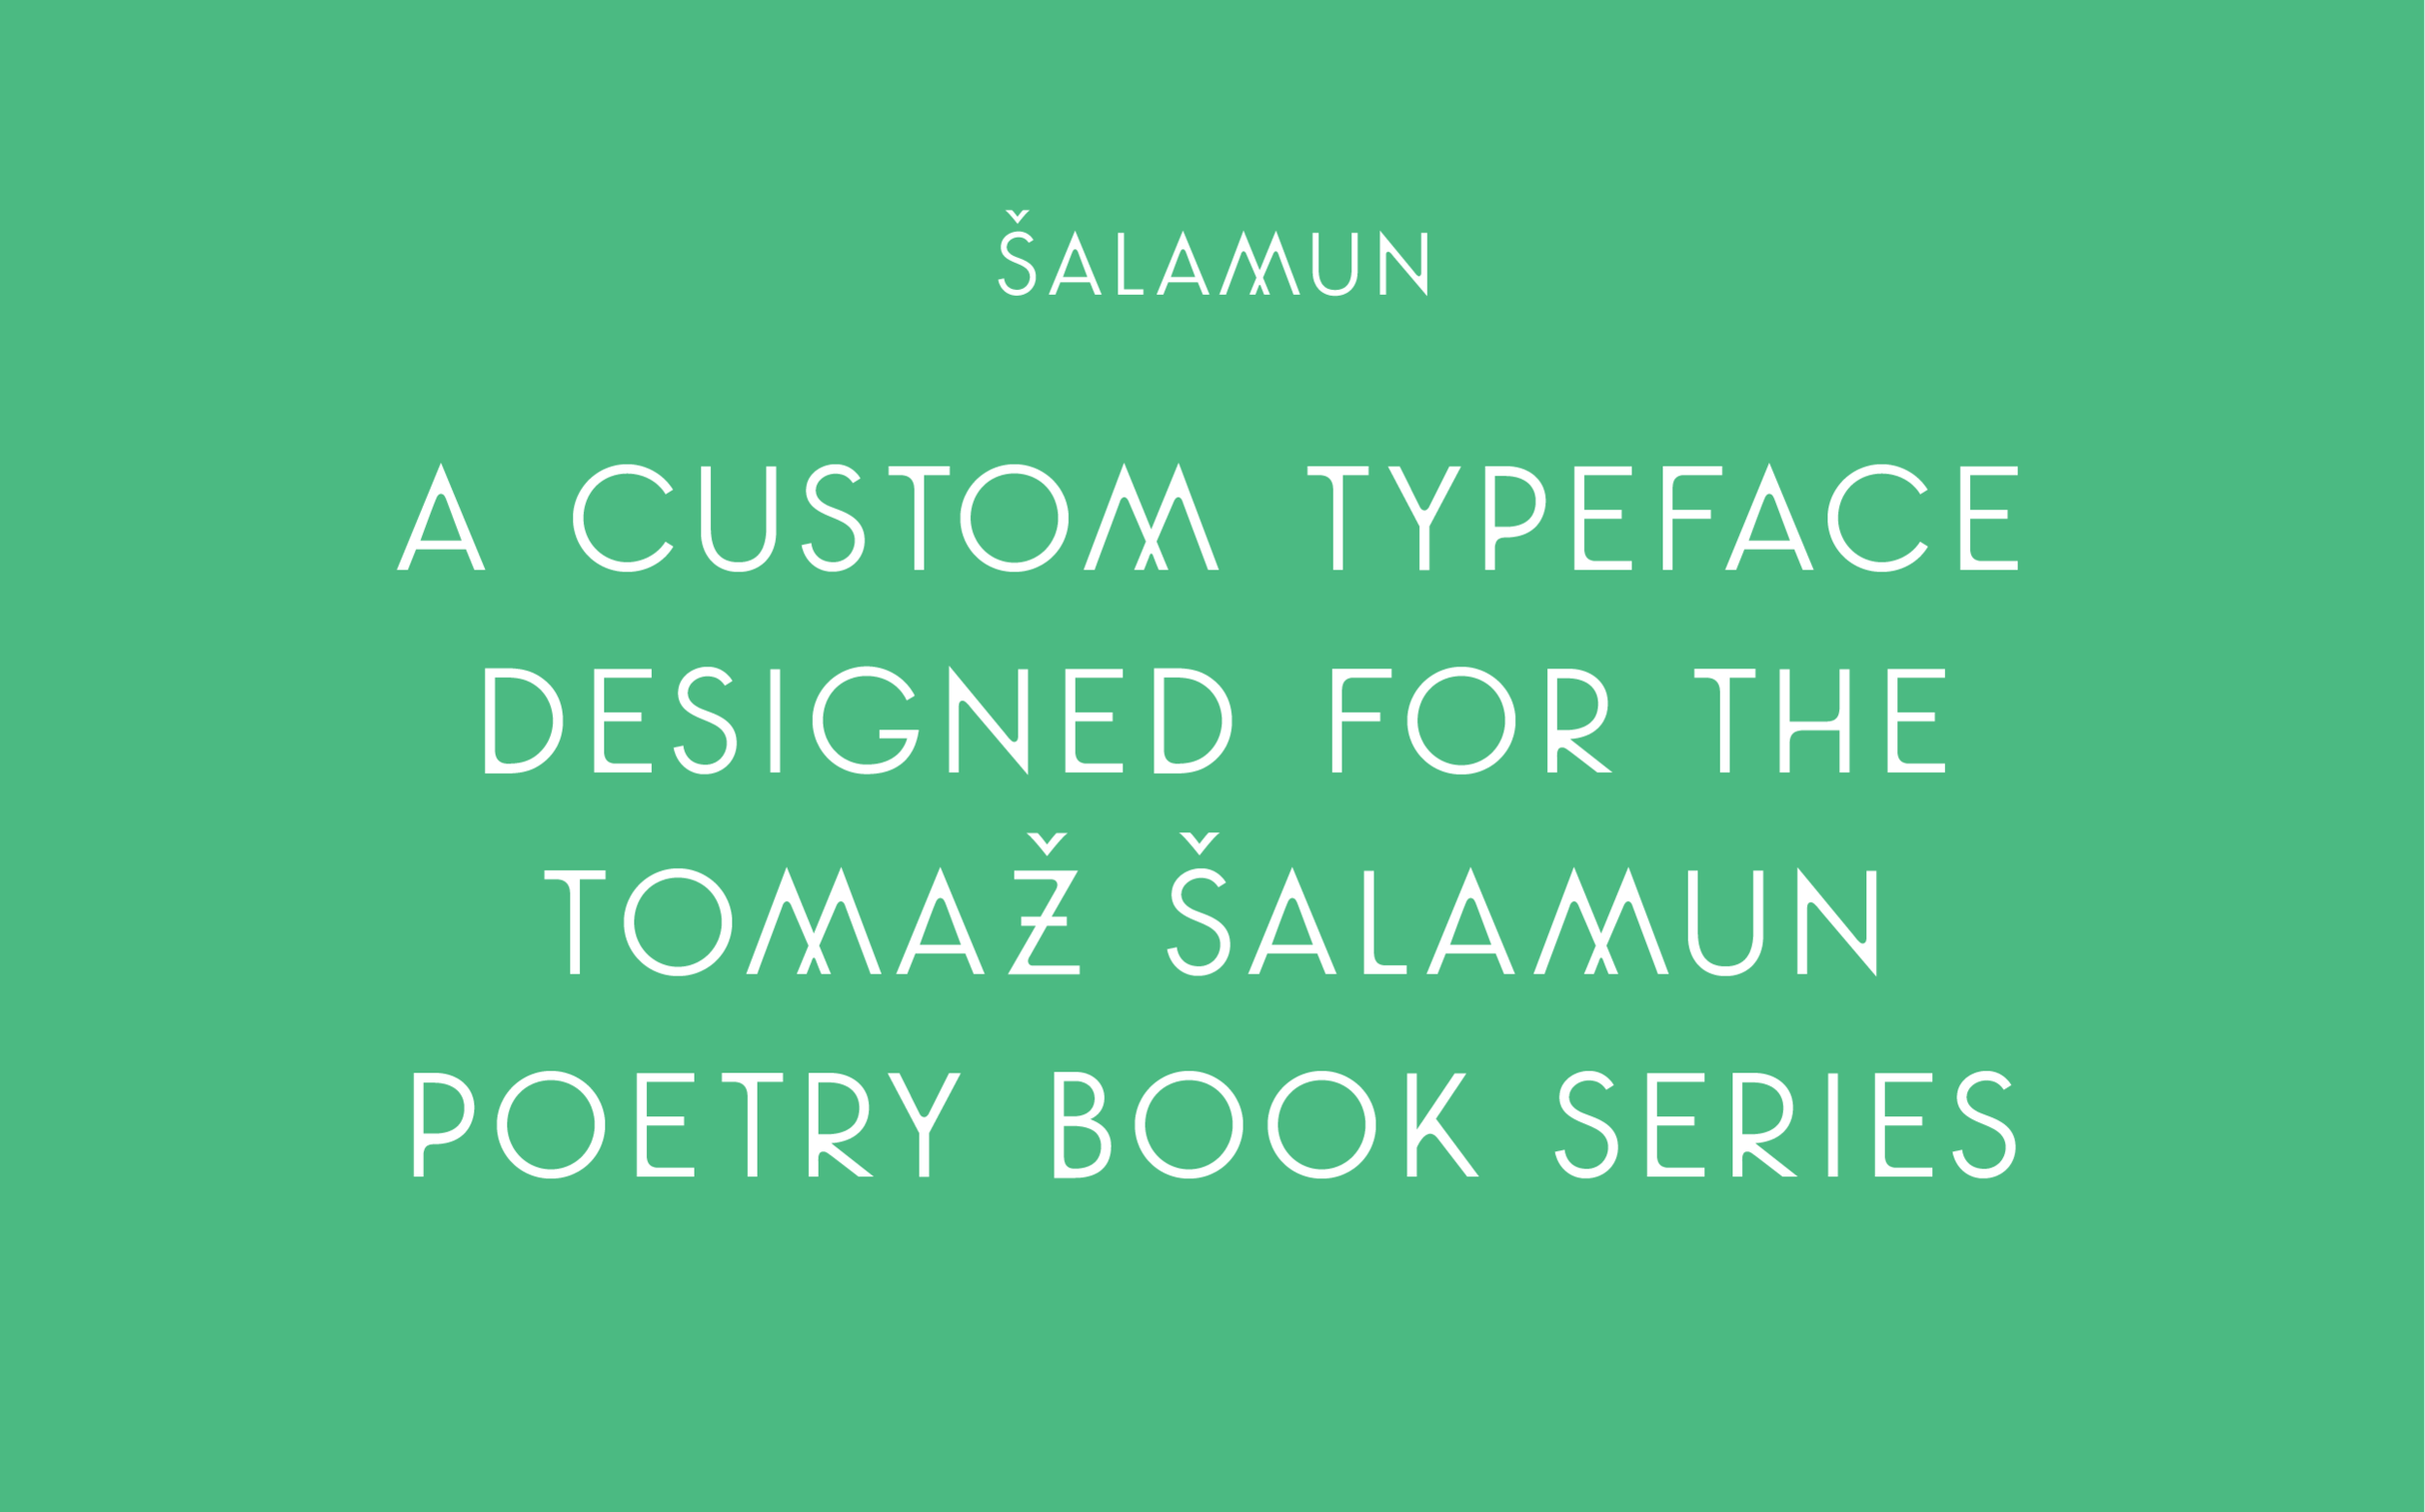 Salamun: A custom typeface designed for the Tomaz Salamun poetry book series by Abby Haddican Studio.